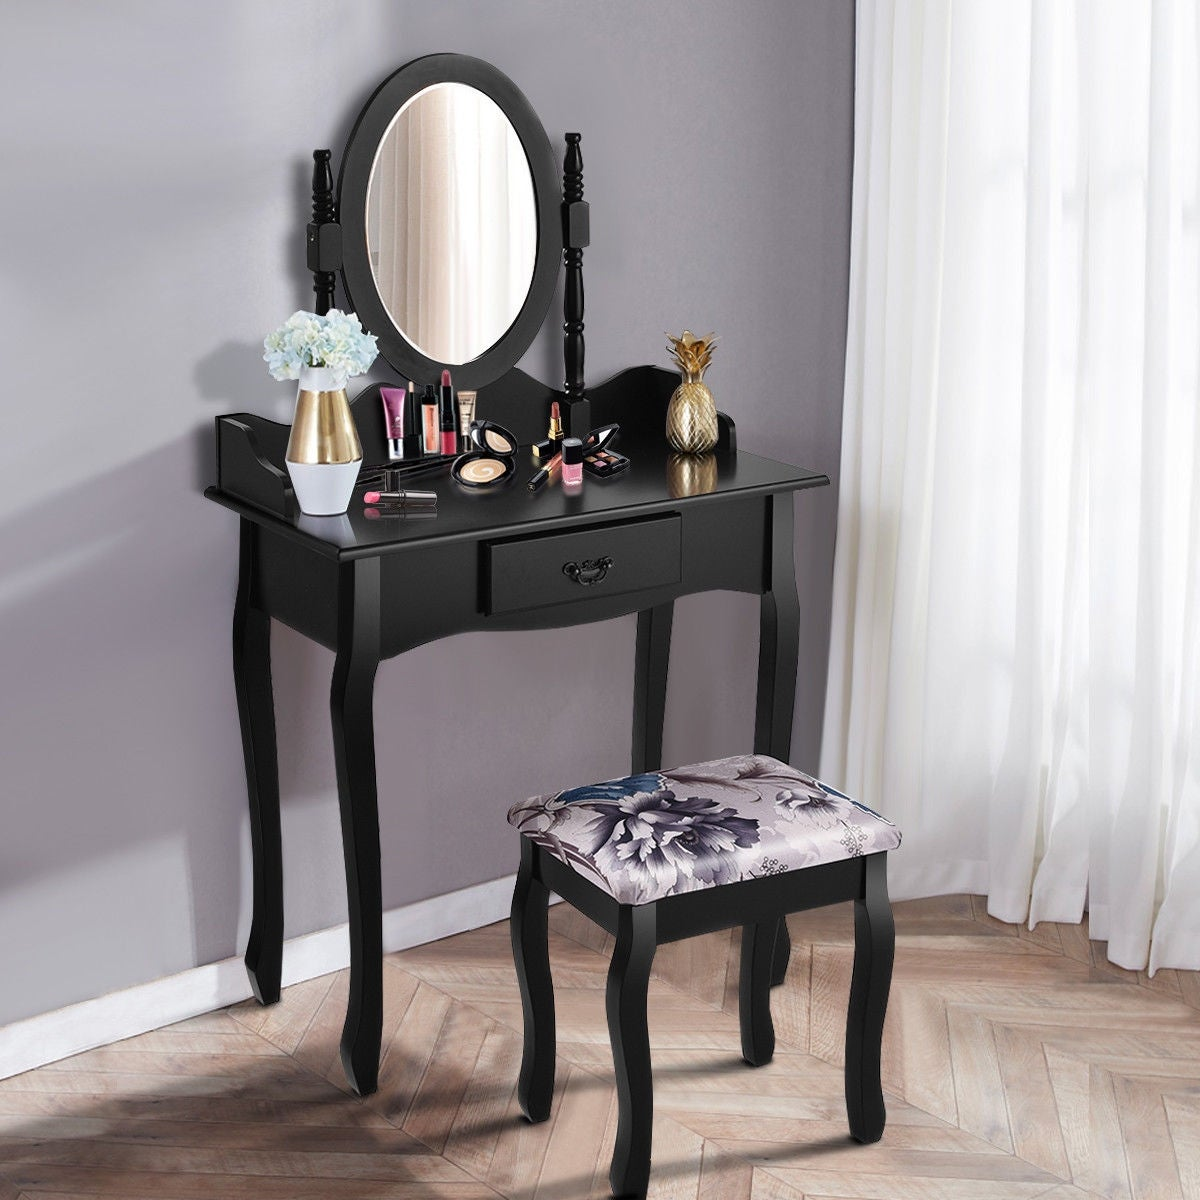 Costway Vanity Wood Makeup Dressing Table Stool Set Jewelry Desk Bathroom W Drawer Mirror Black Free Shipping Today 18298125